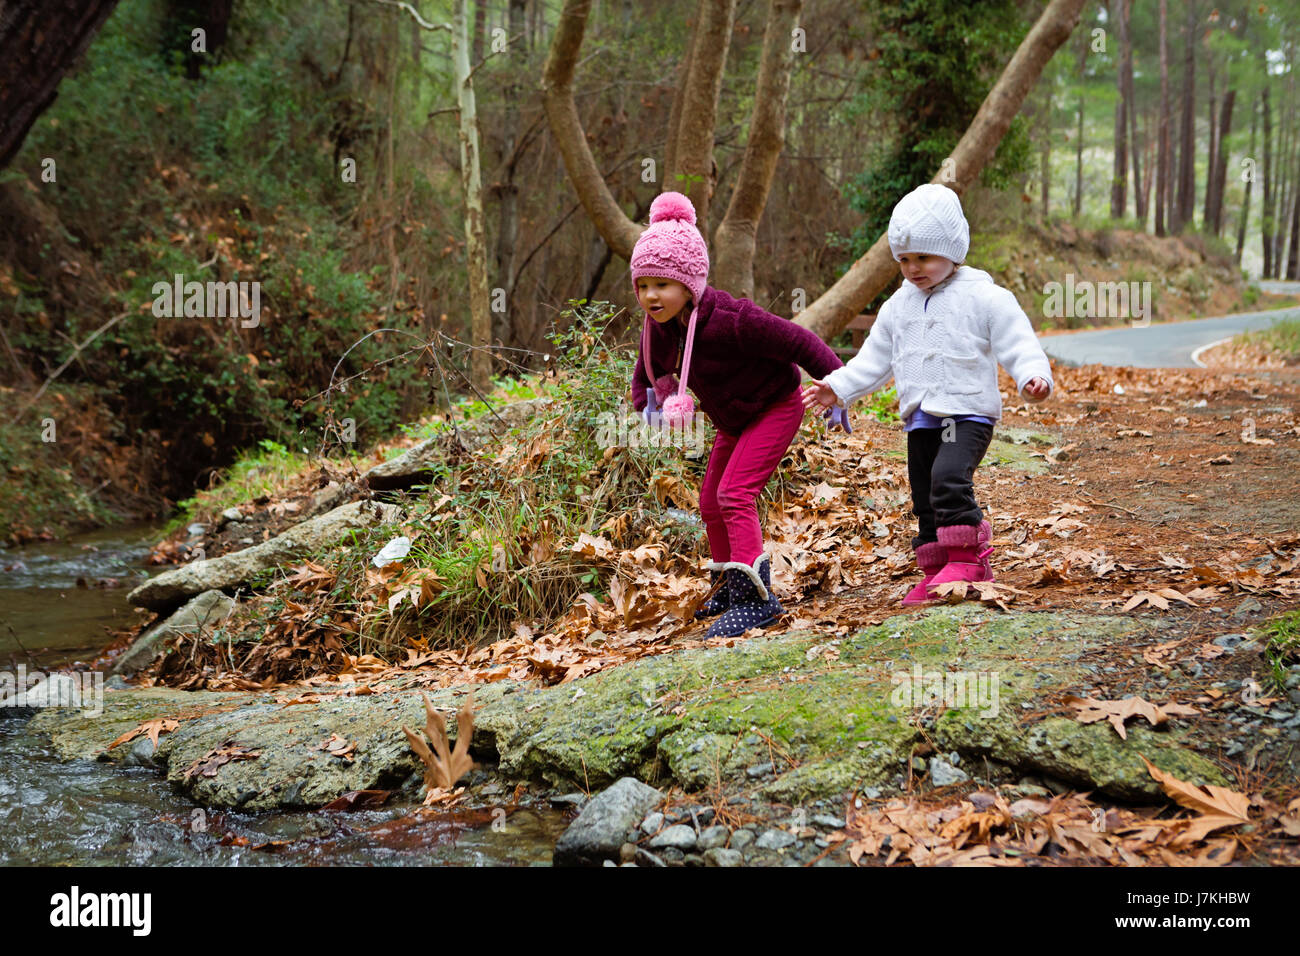 Young Children Looking At The Stream Flowing - Stock Image